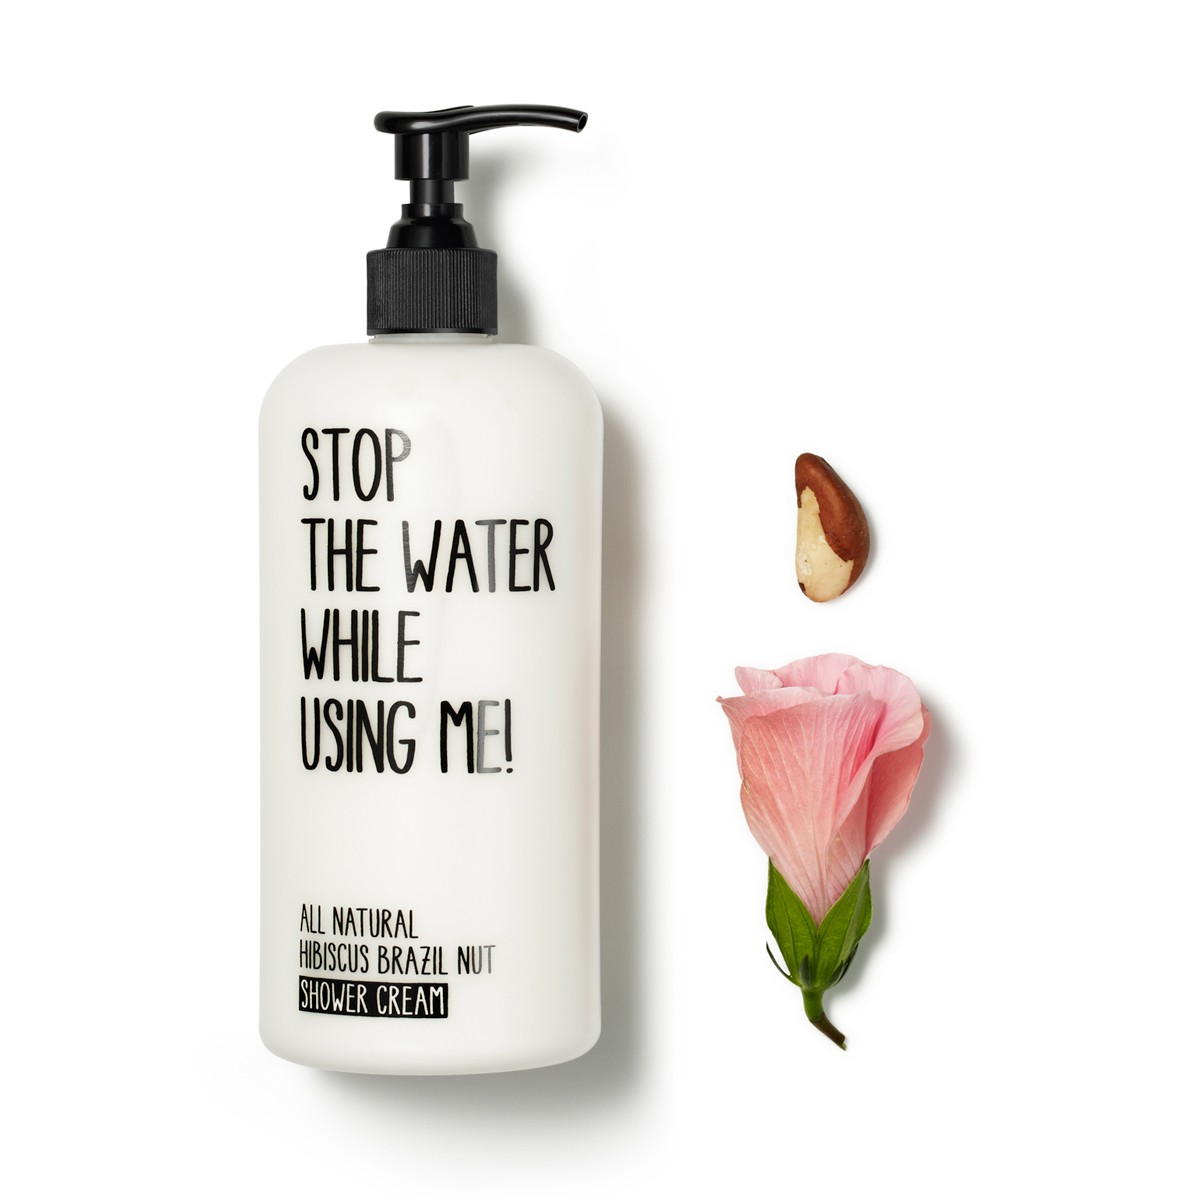 All Natural Hibiscus Brazil Nut Shower Cream 500 ml von STOP THE WATER WHILE USING ME!